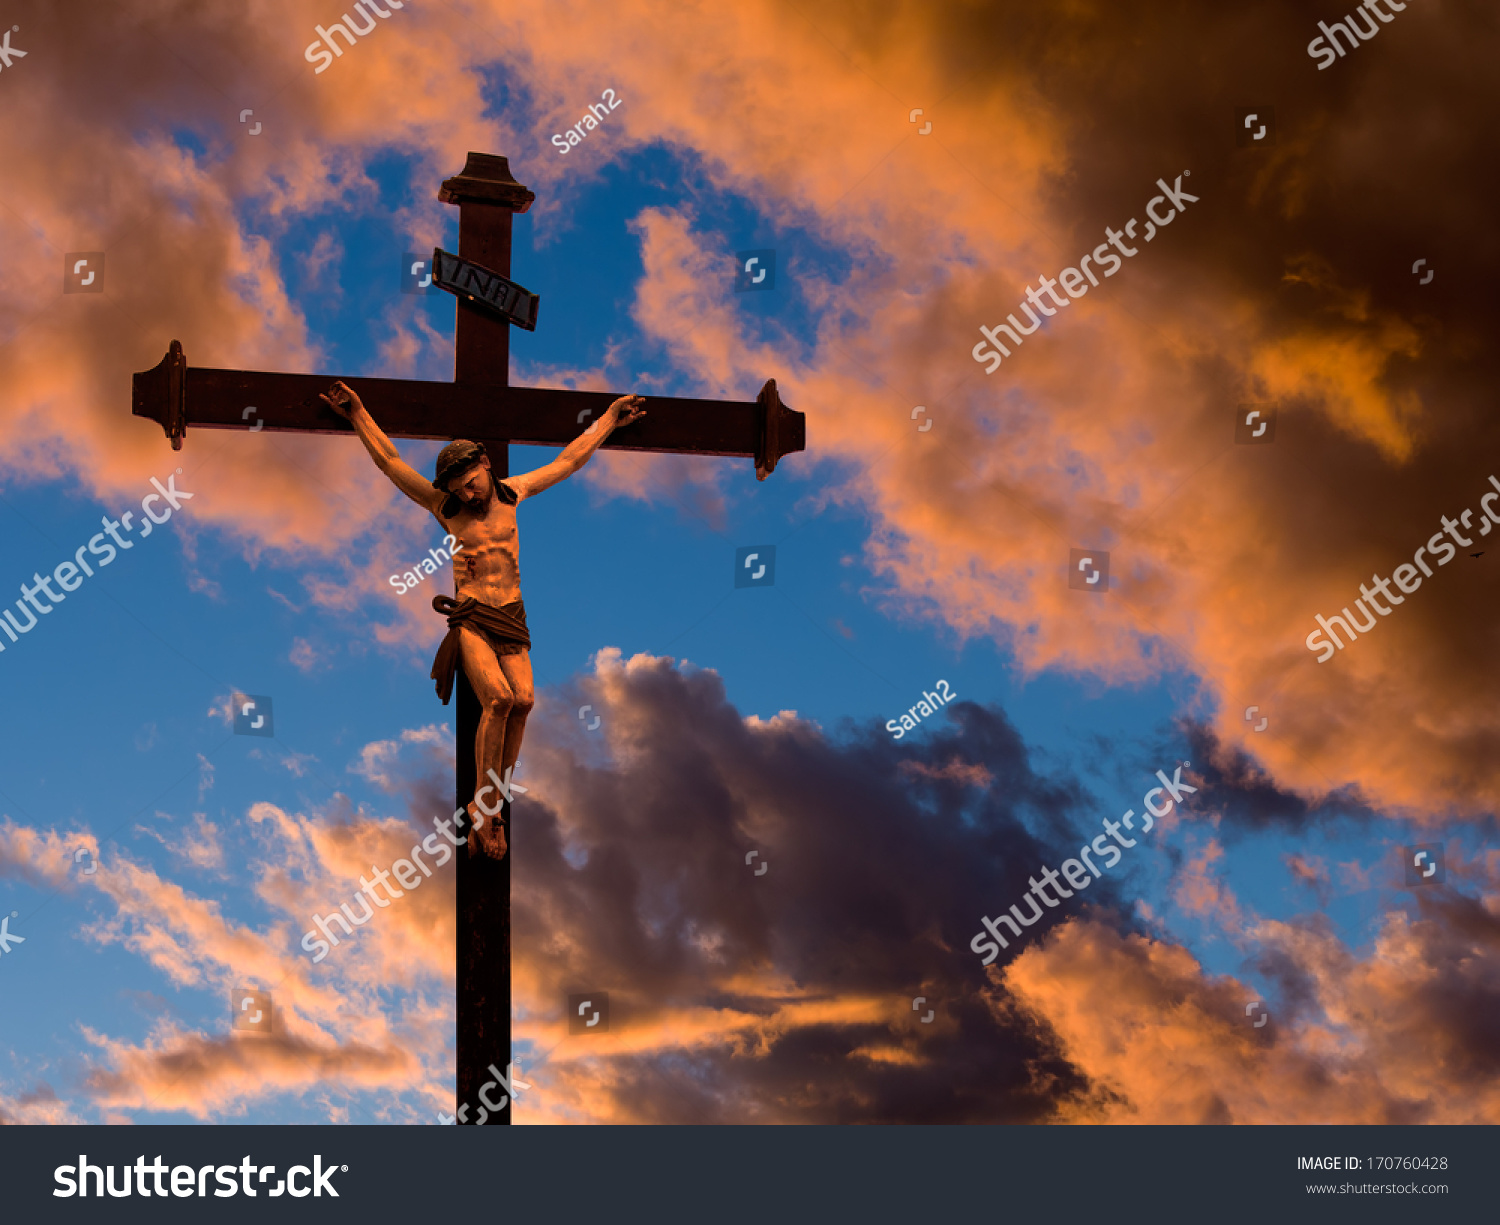 Silhouette of the holy cross on background of storm clouds stock - Save To A Lightbox